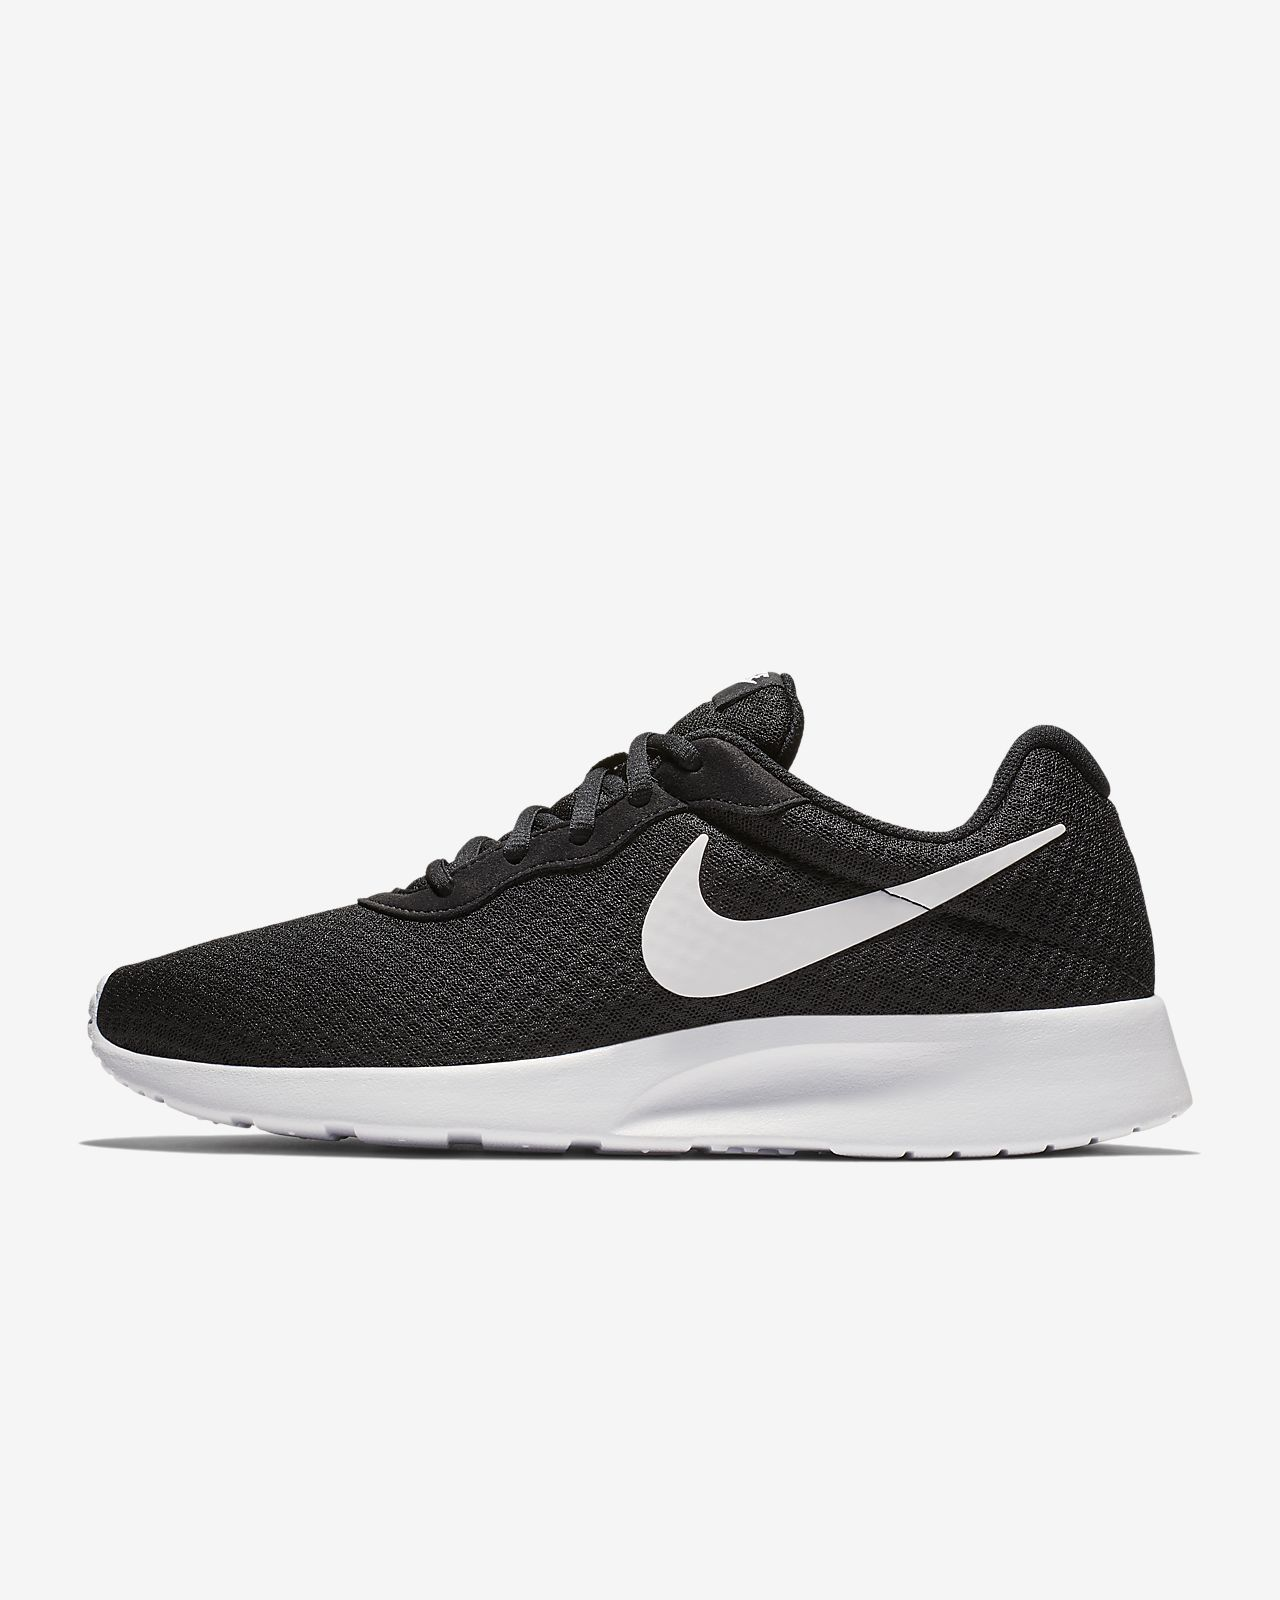 Nike Tanjun Women's Shoe